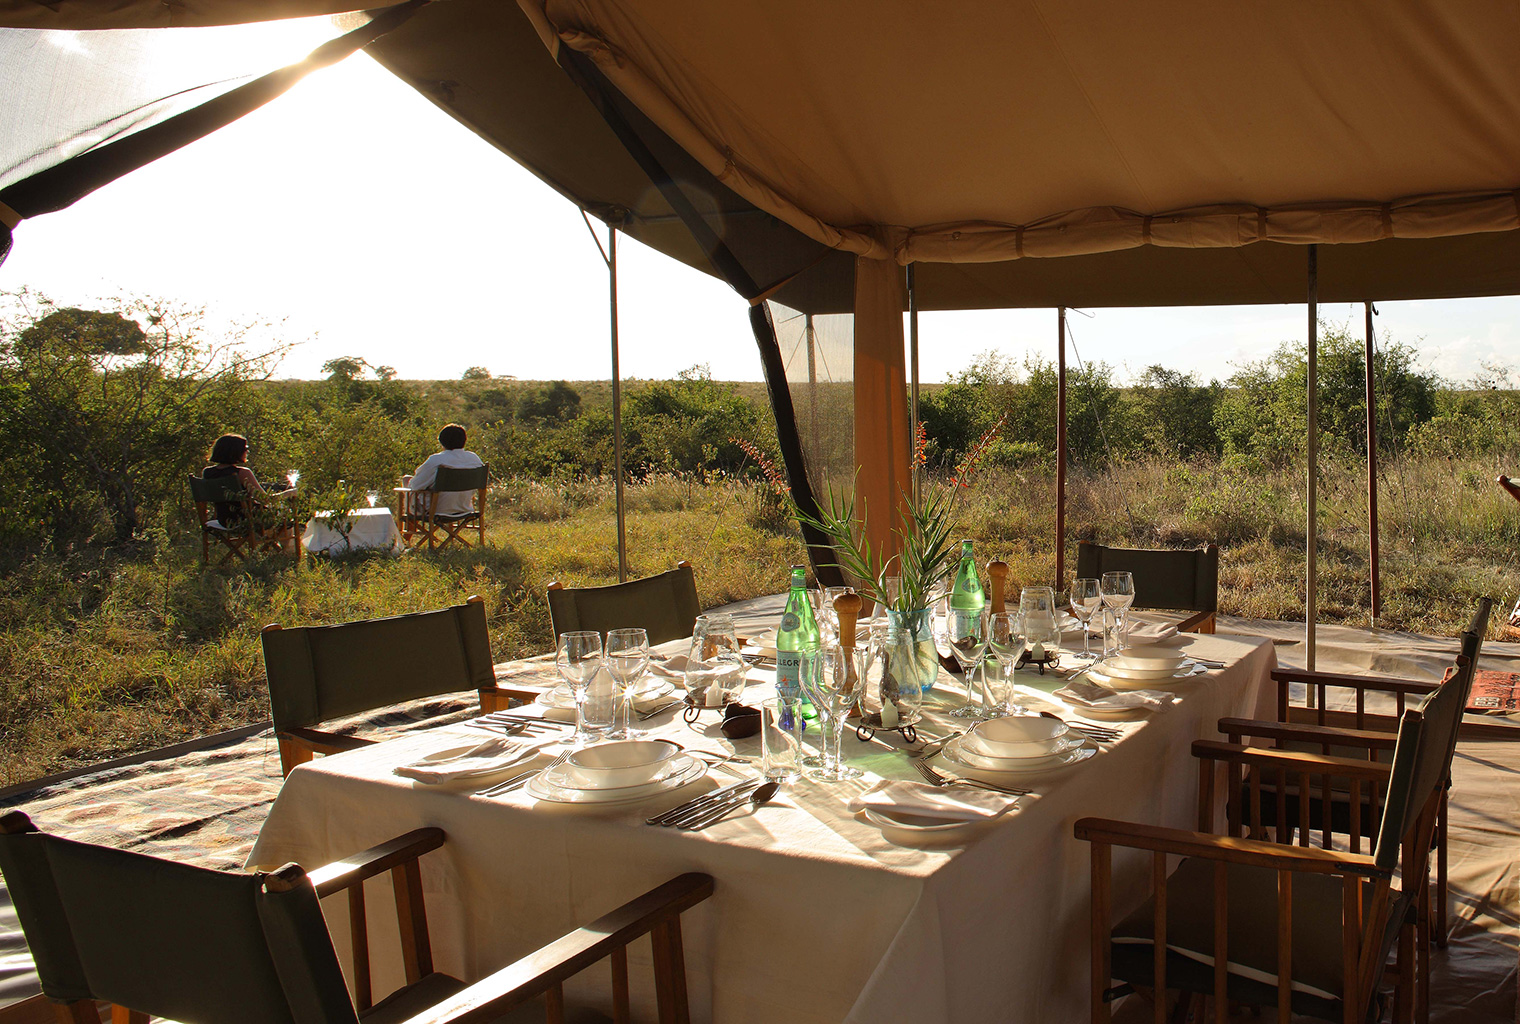 Lowis-and-Leakey-Kenya-Dining-Table